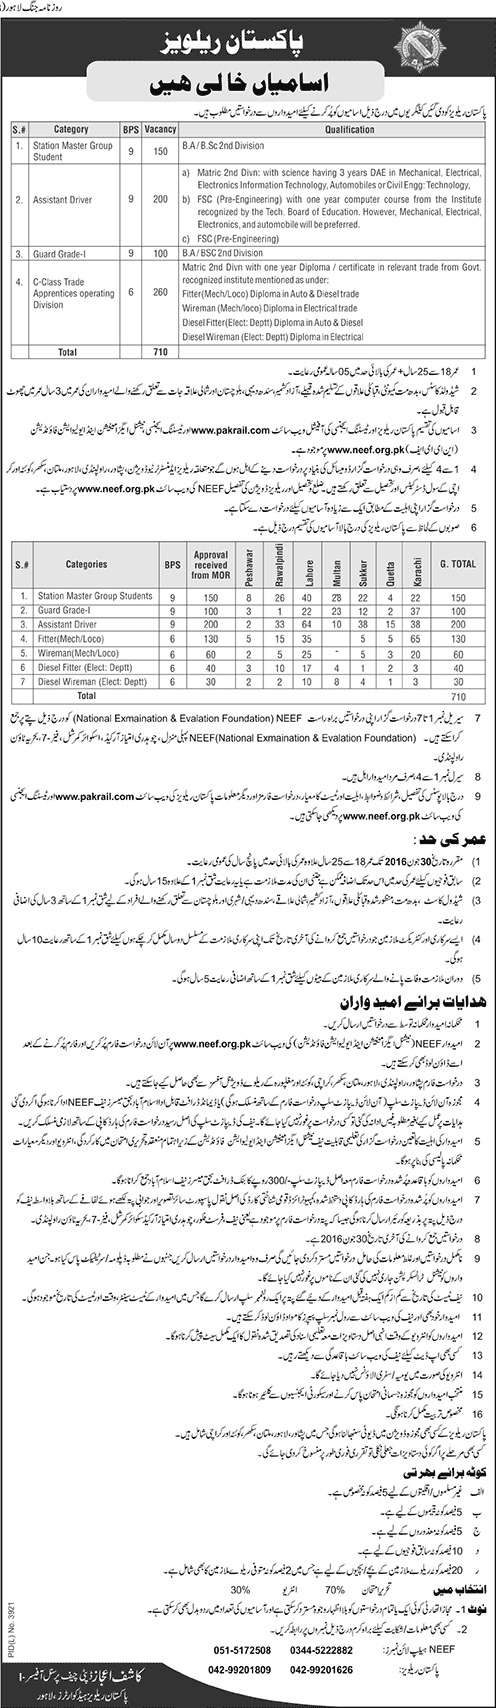 railway lahore jobs 2016 neef application form eligibility last date railway lahore jobs 2016 neef application form eligibility last date